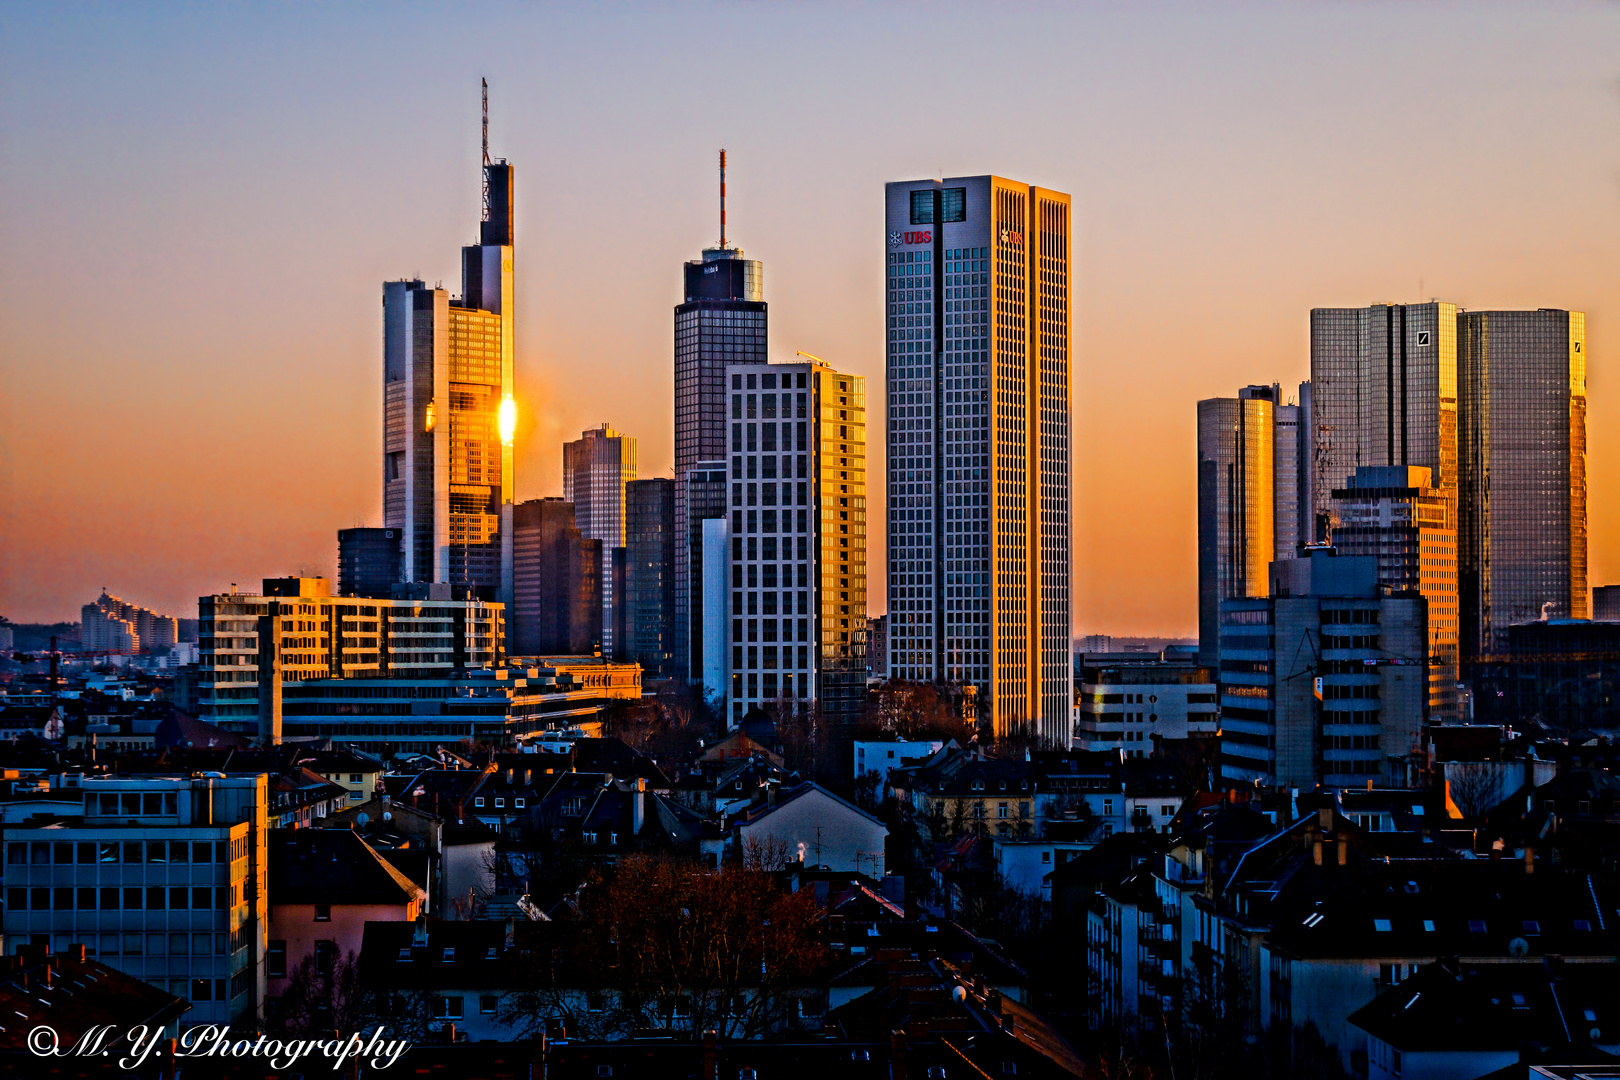 frankfurt skyline foto bild architektur stadtlandschaft skylines bilder auf fotocommunity. Black Bedroom Furniture Sets. Home Design Ideas